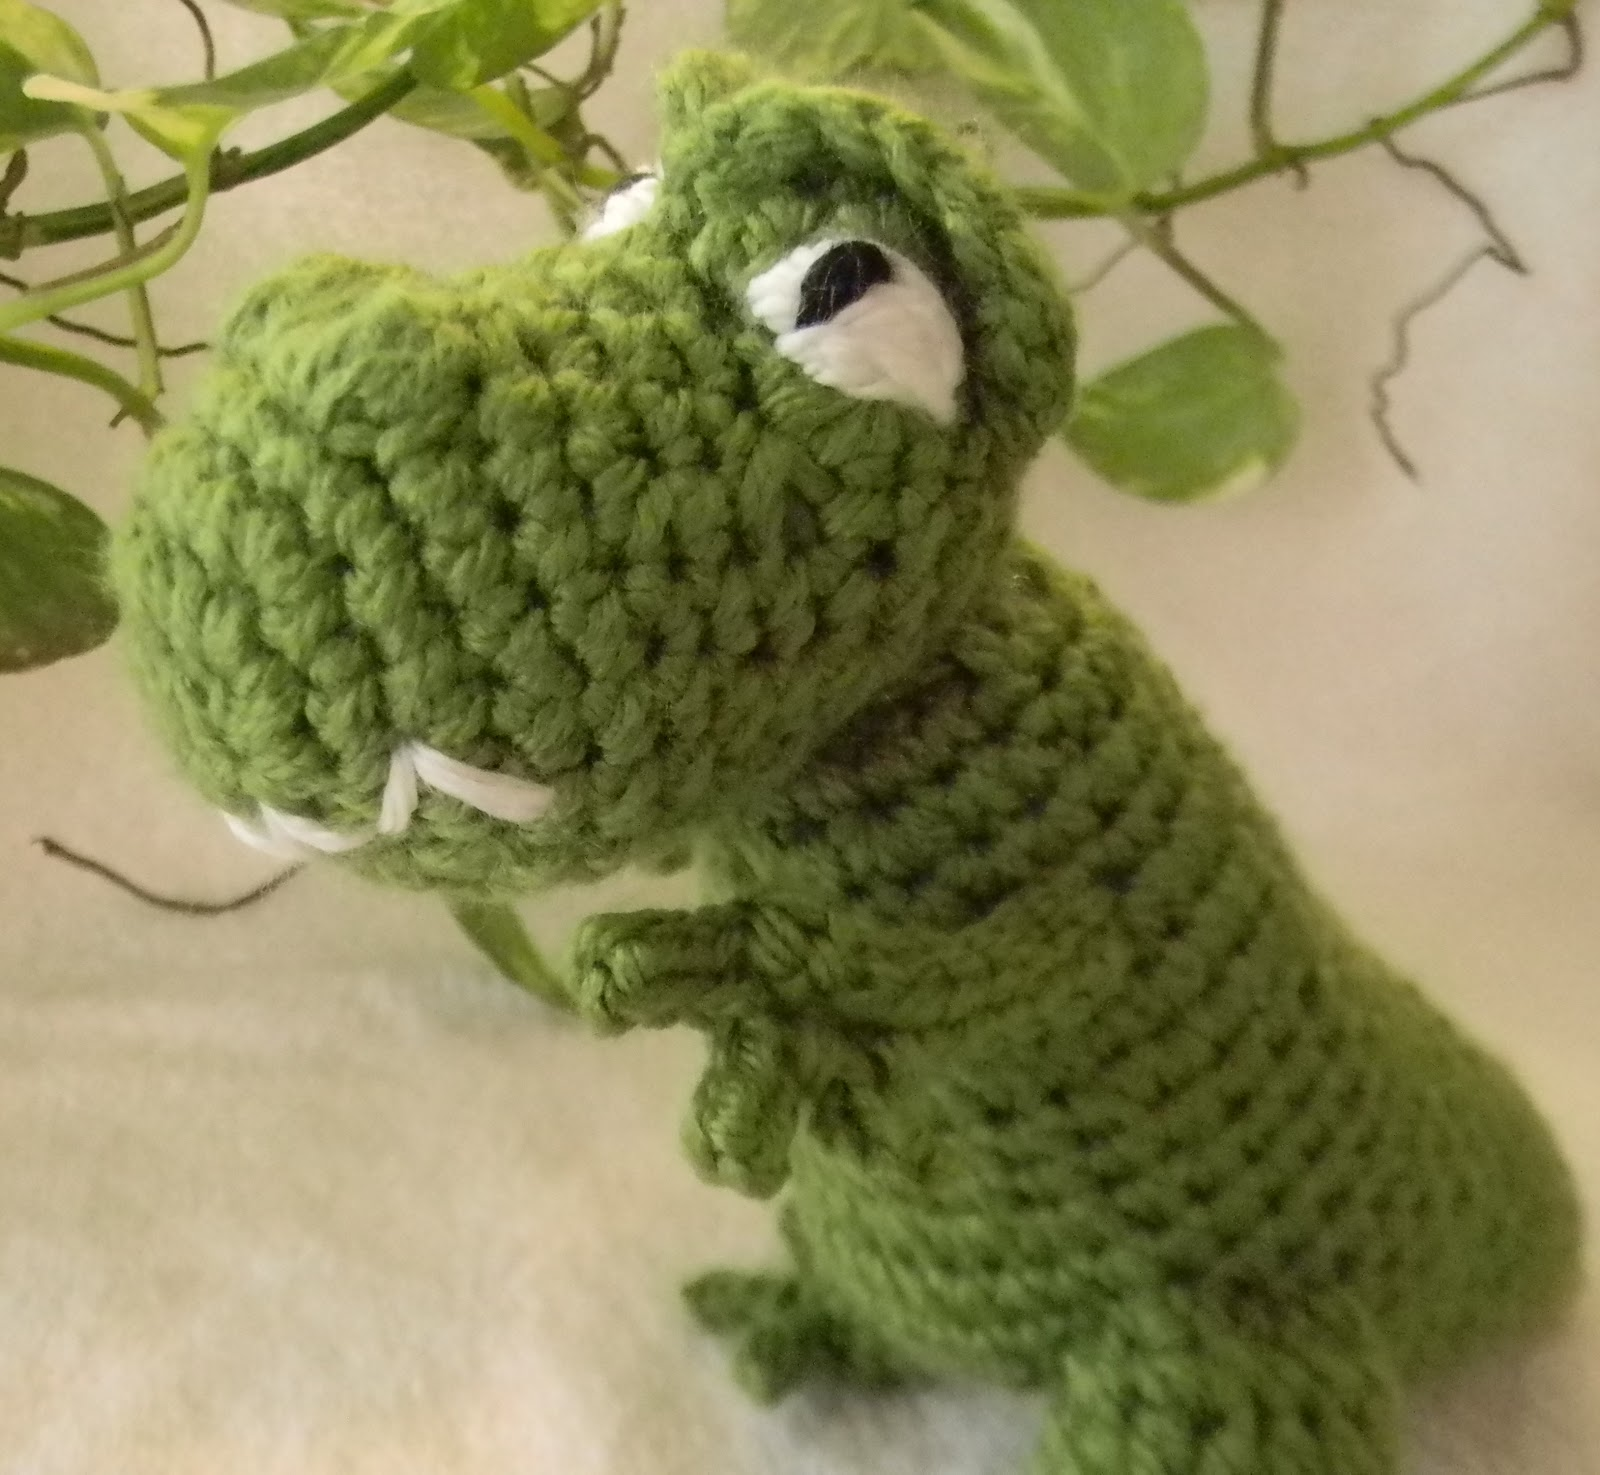 Crochet Patterns Free Doll Clothes : Bizzy Crochet: Bubba the T-Rex